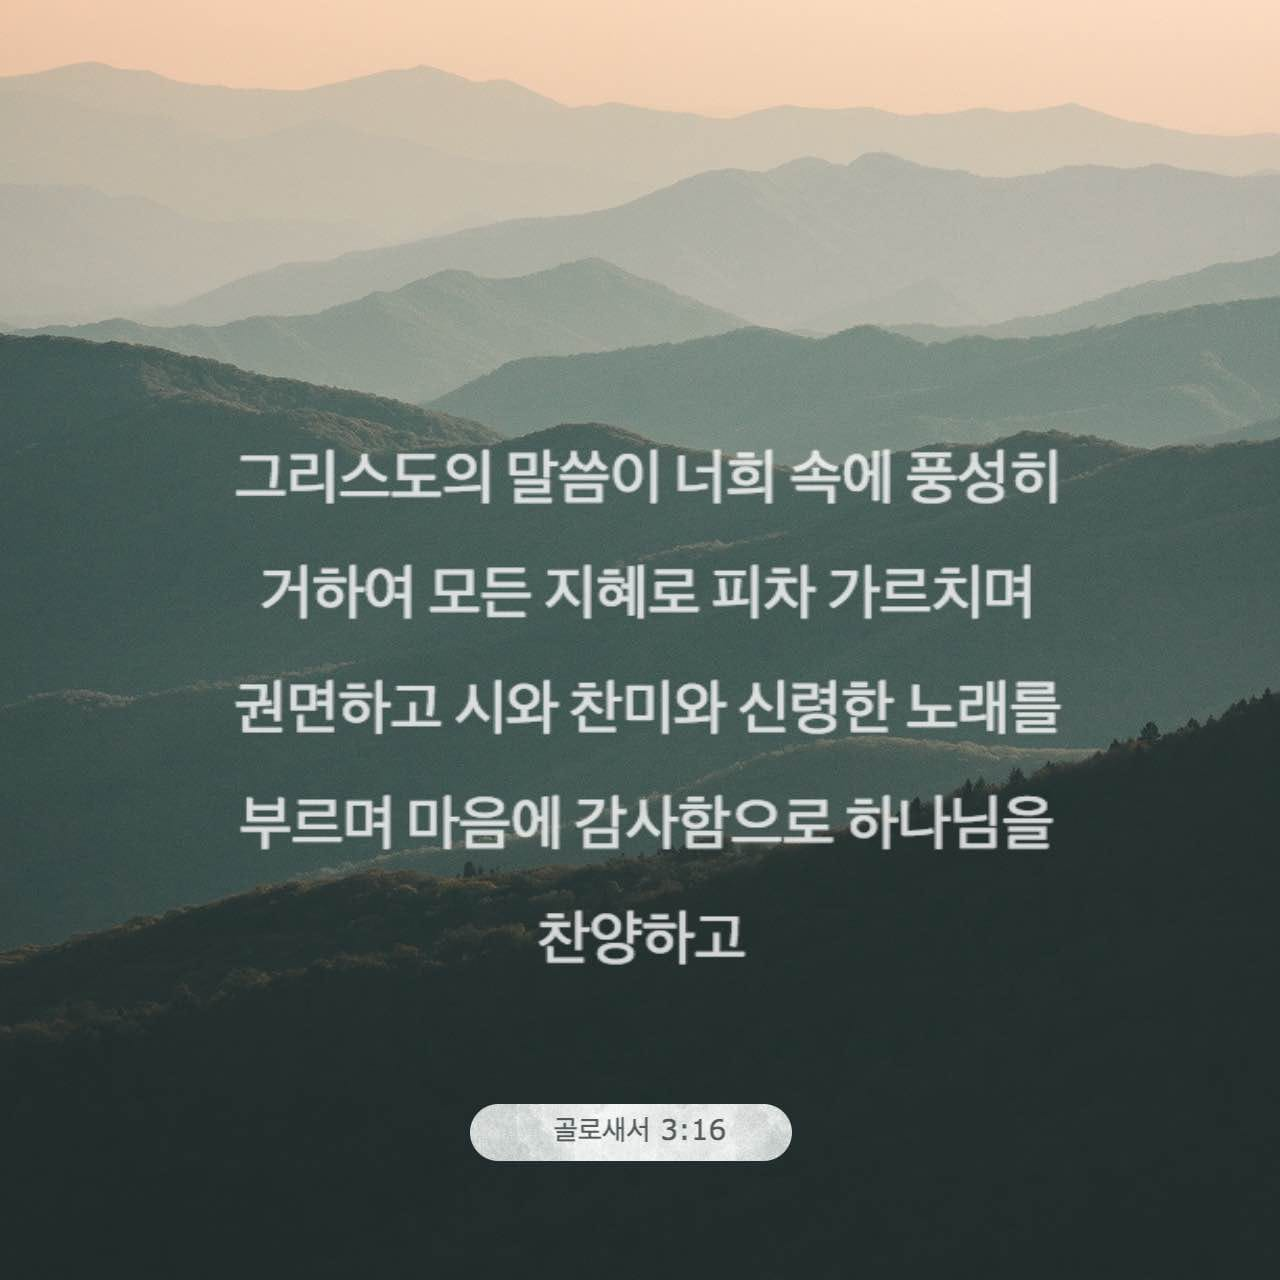 Colossians 3:16 Let the word of Christ dwell in you richly in all wisdom; teaching and admonishing one another in psalms and hymns and spiritual songs, singing with grace in your hearts to the Lord. | King James Version (KJV) | 지금 성경 앱 다운로드